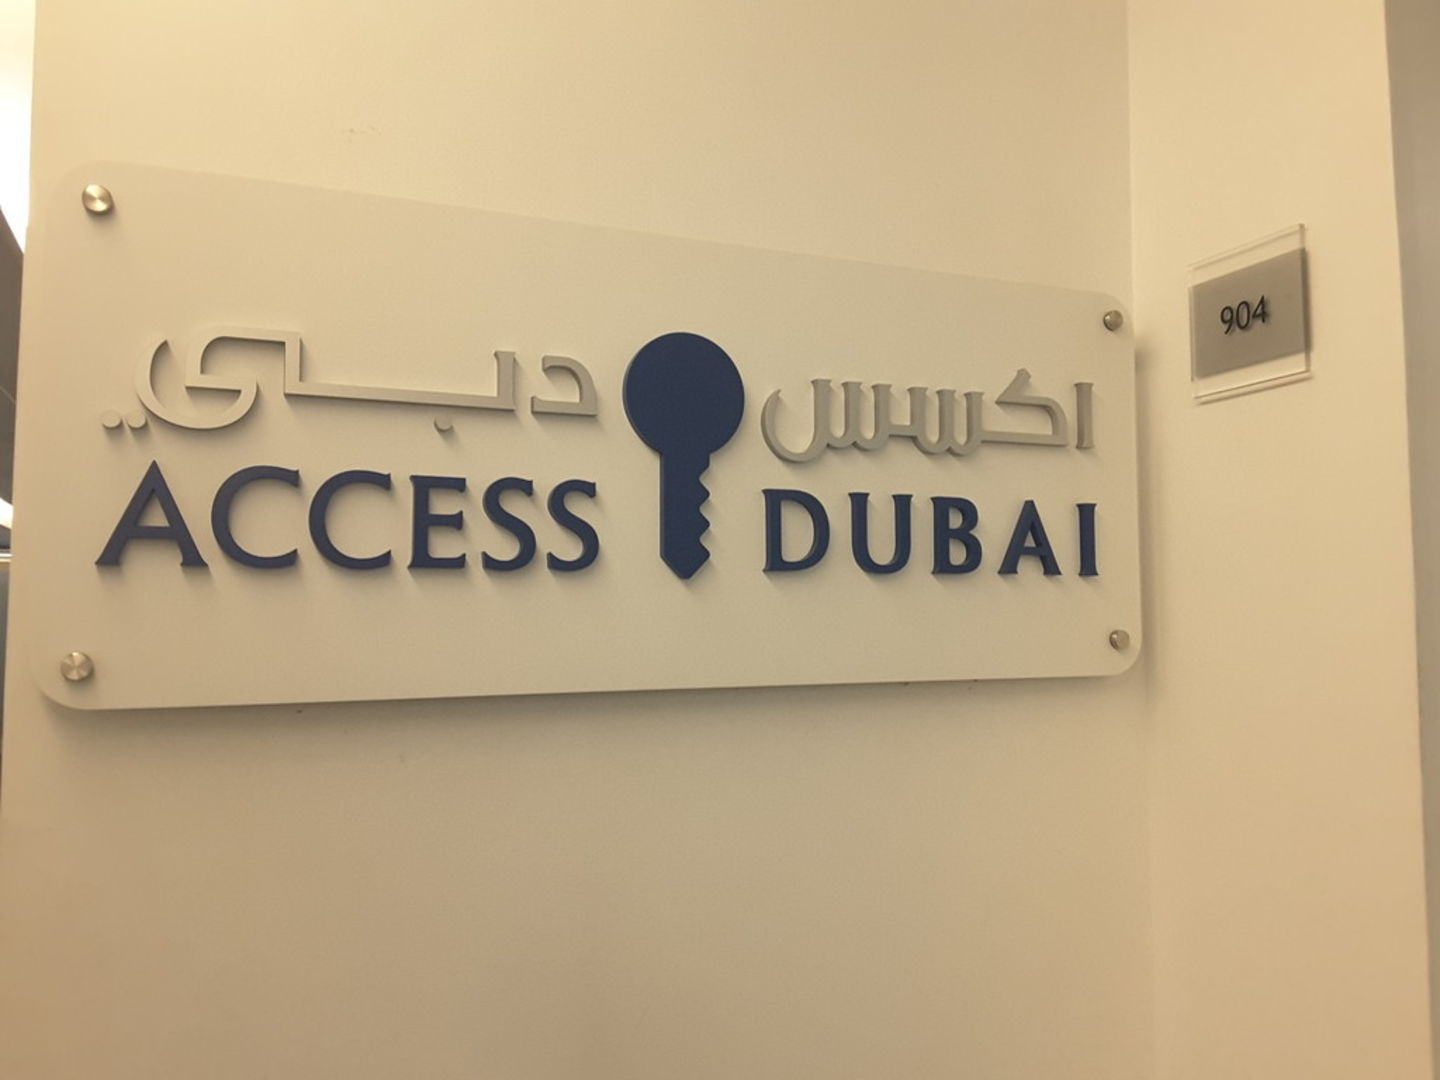 HiDubai-business-access-dubai-b2b-services-business-consultation-services-dubai-media-city-al-sufouh-2-dubai-2